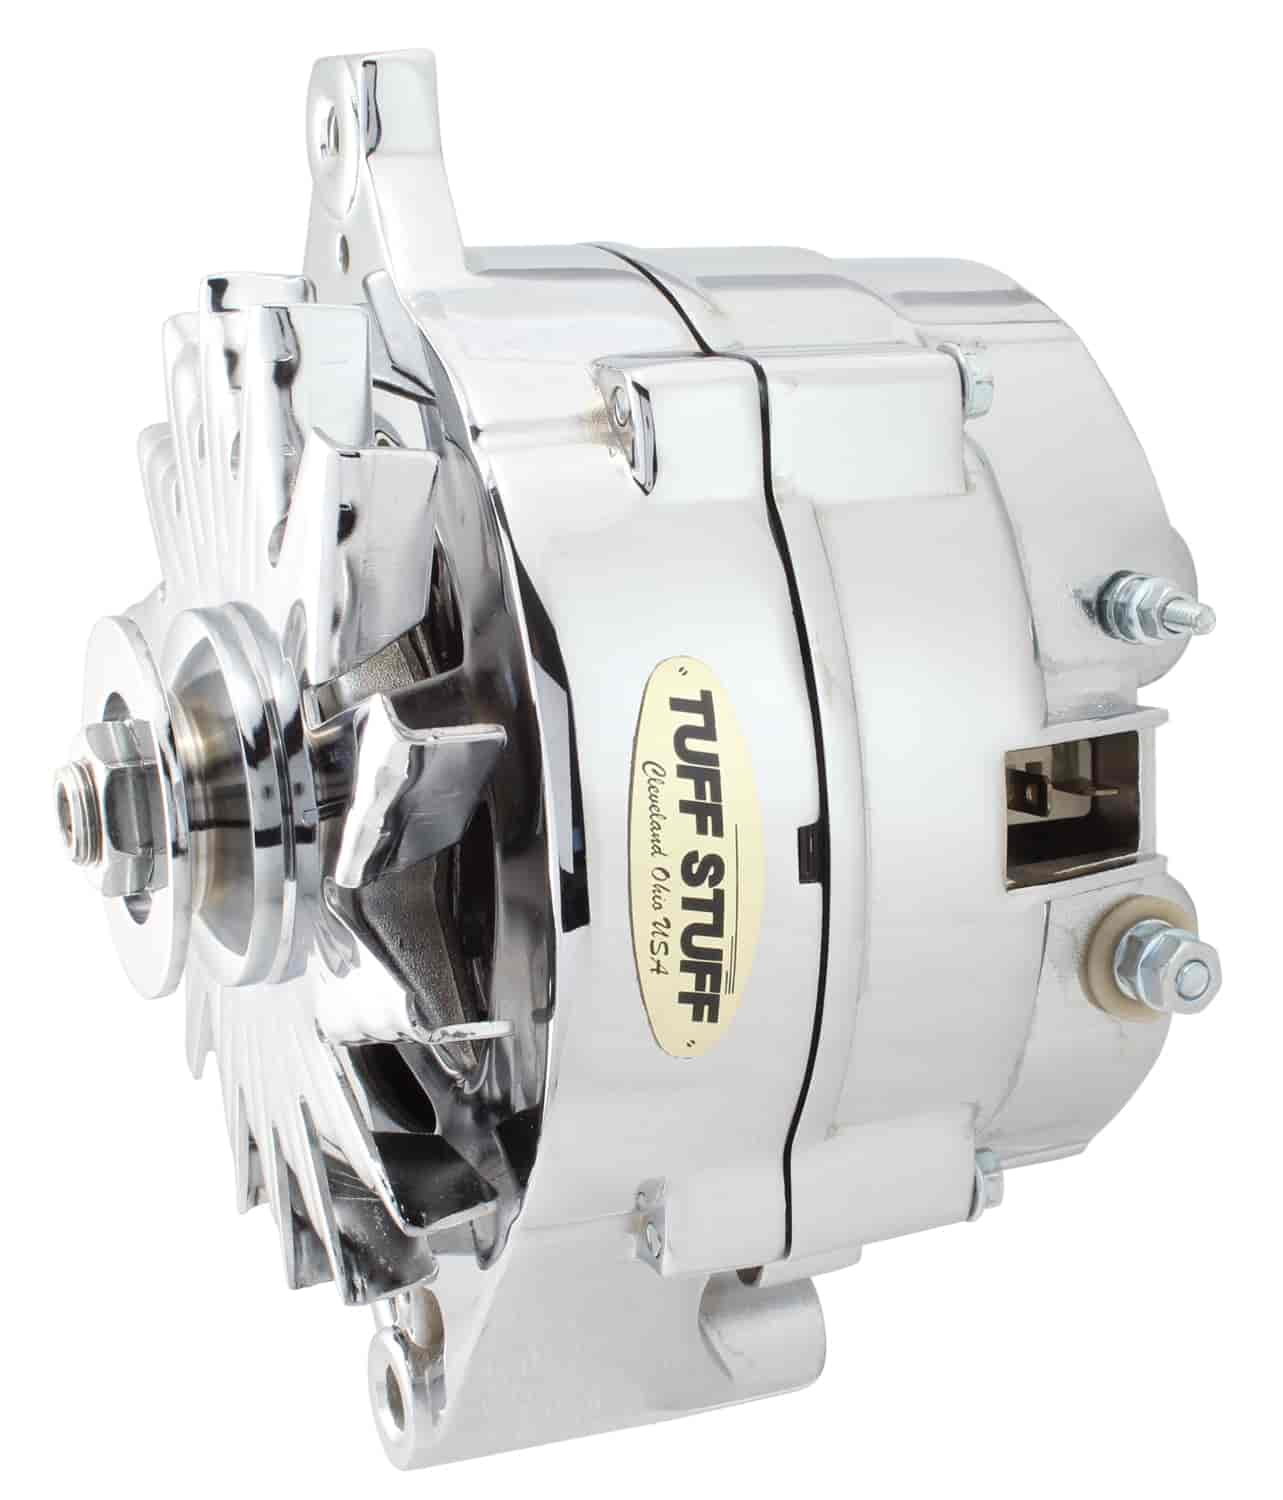 Tuff Stuff 7074RA - Tuff Stuff Chrome Alternators